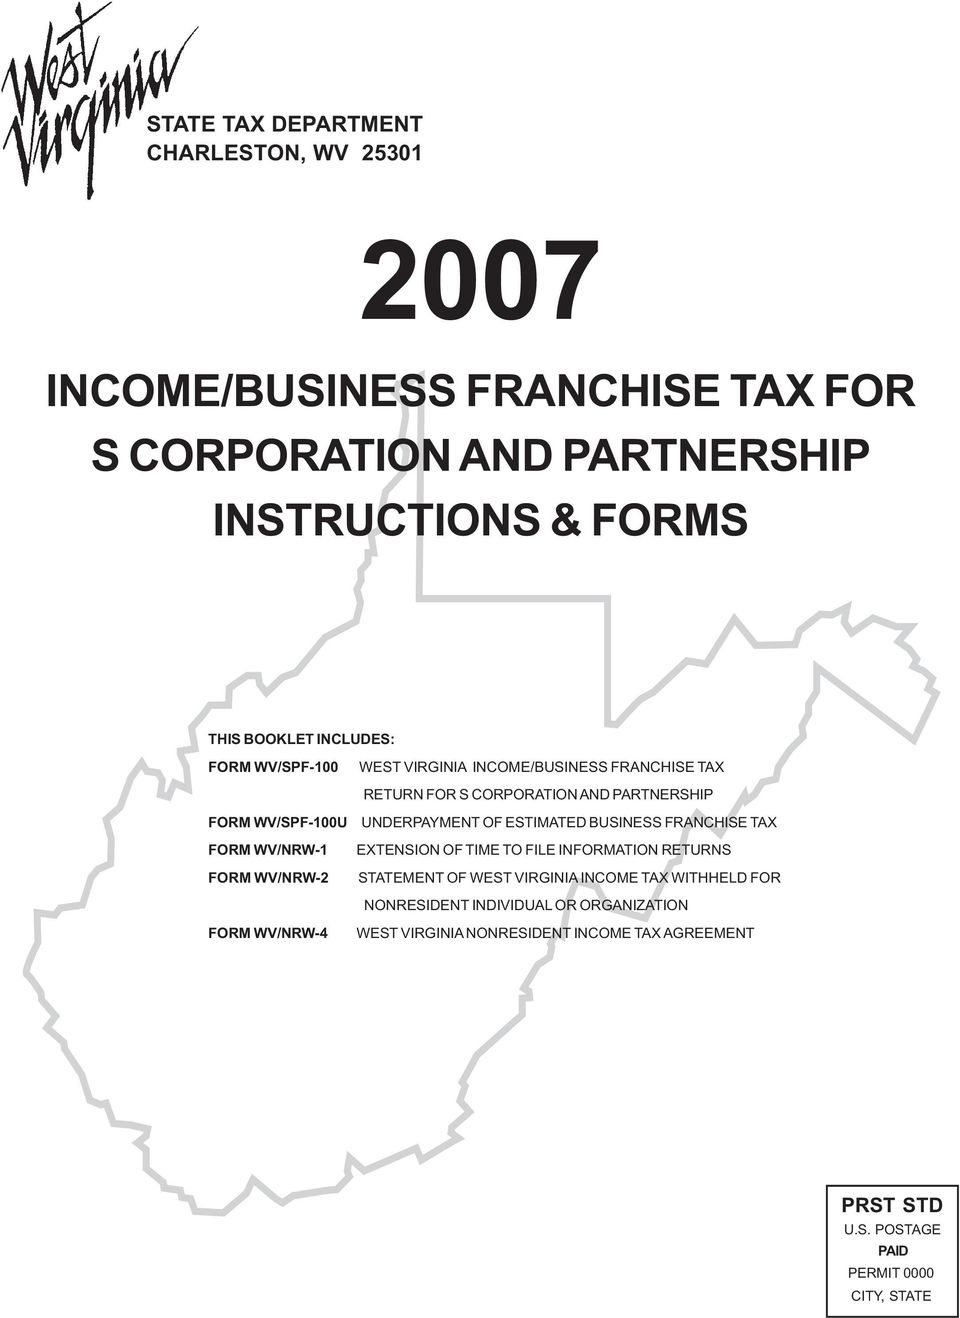 INCOME/BUSINESS FRANCHISE TAX FOR S CORPORATION AND